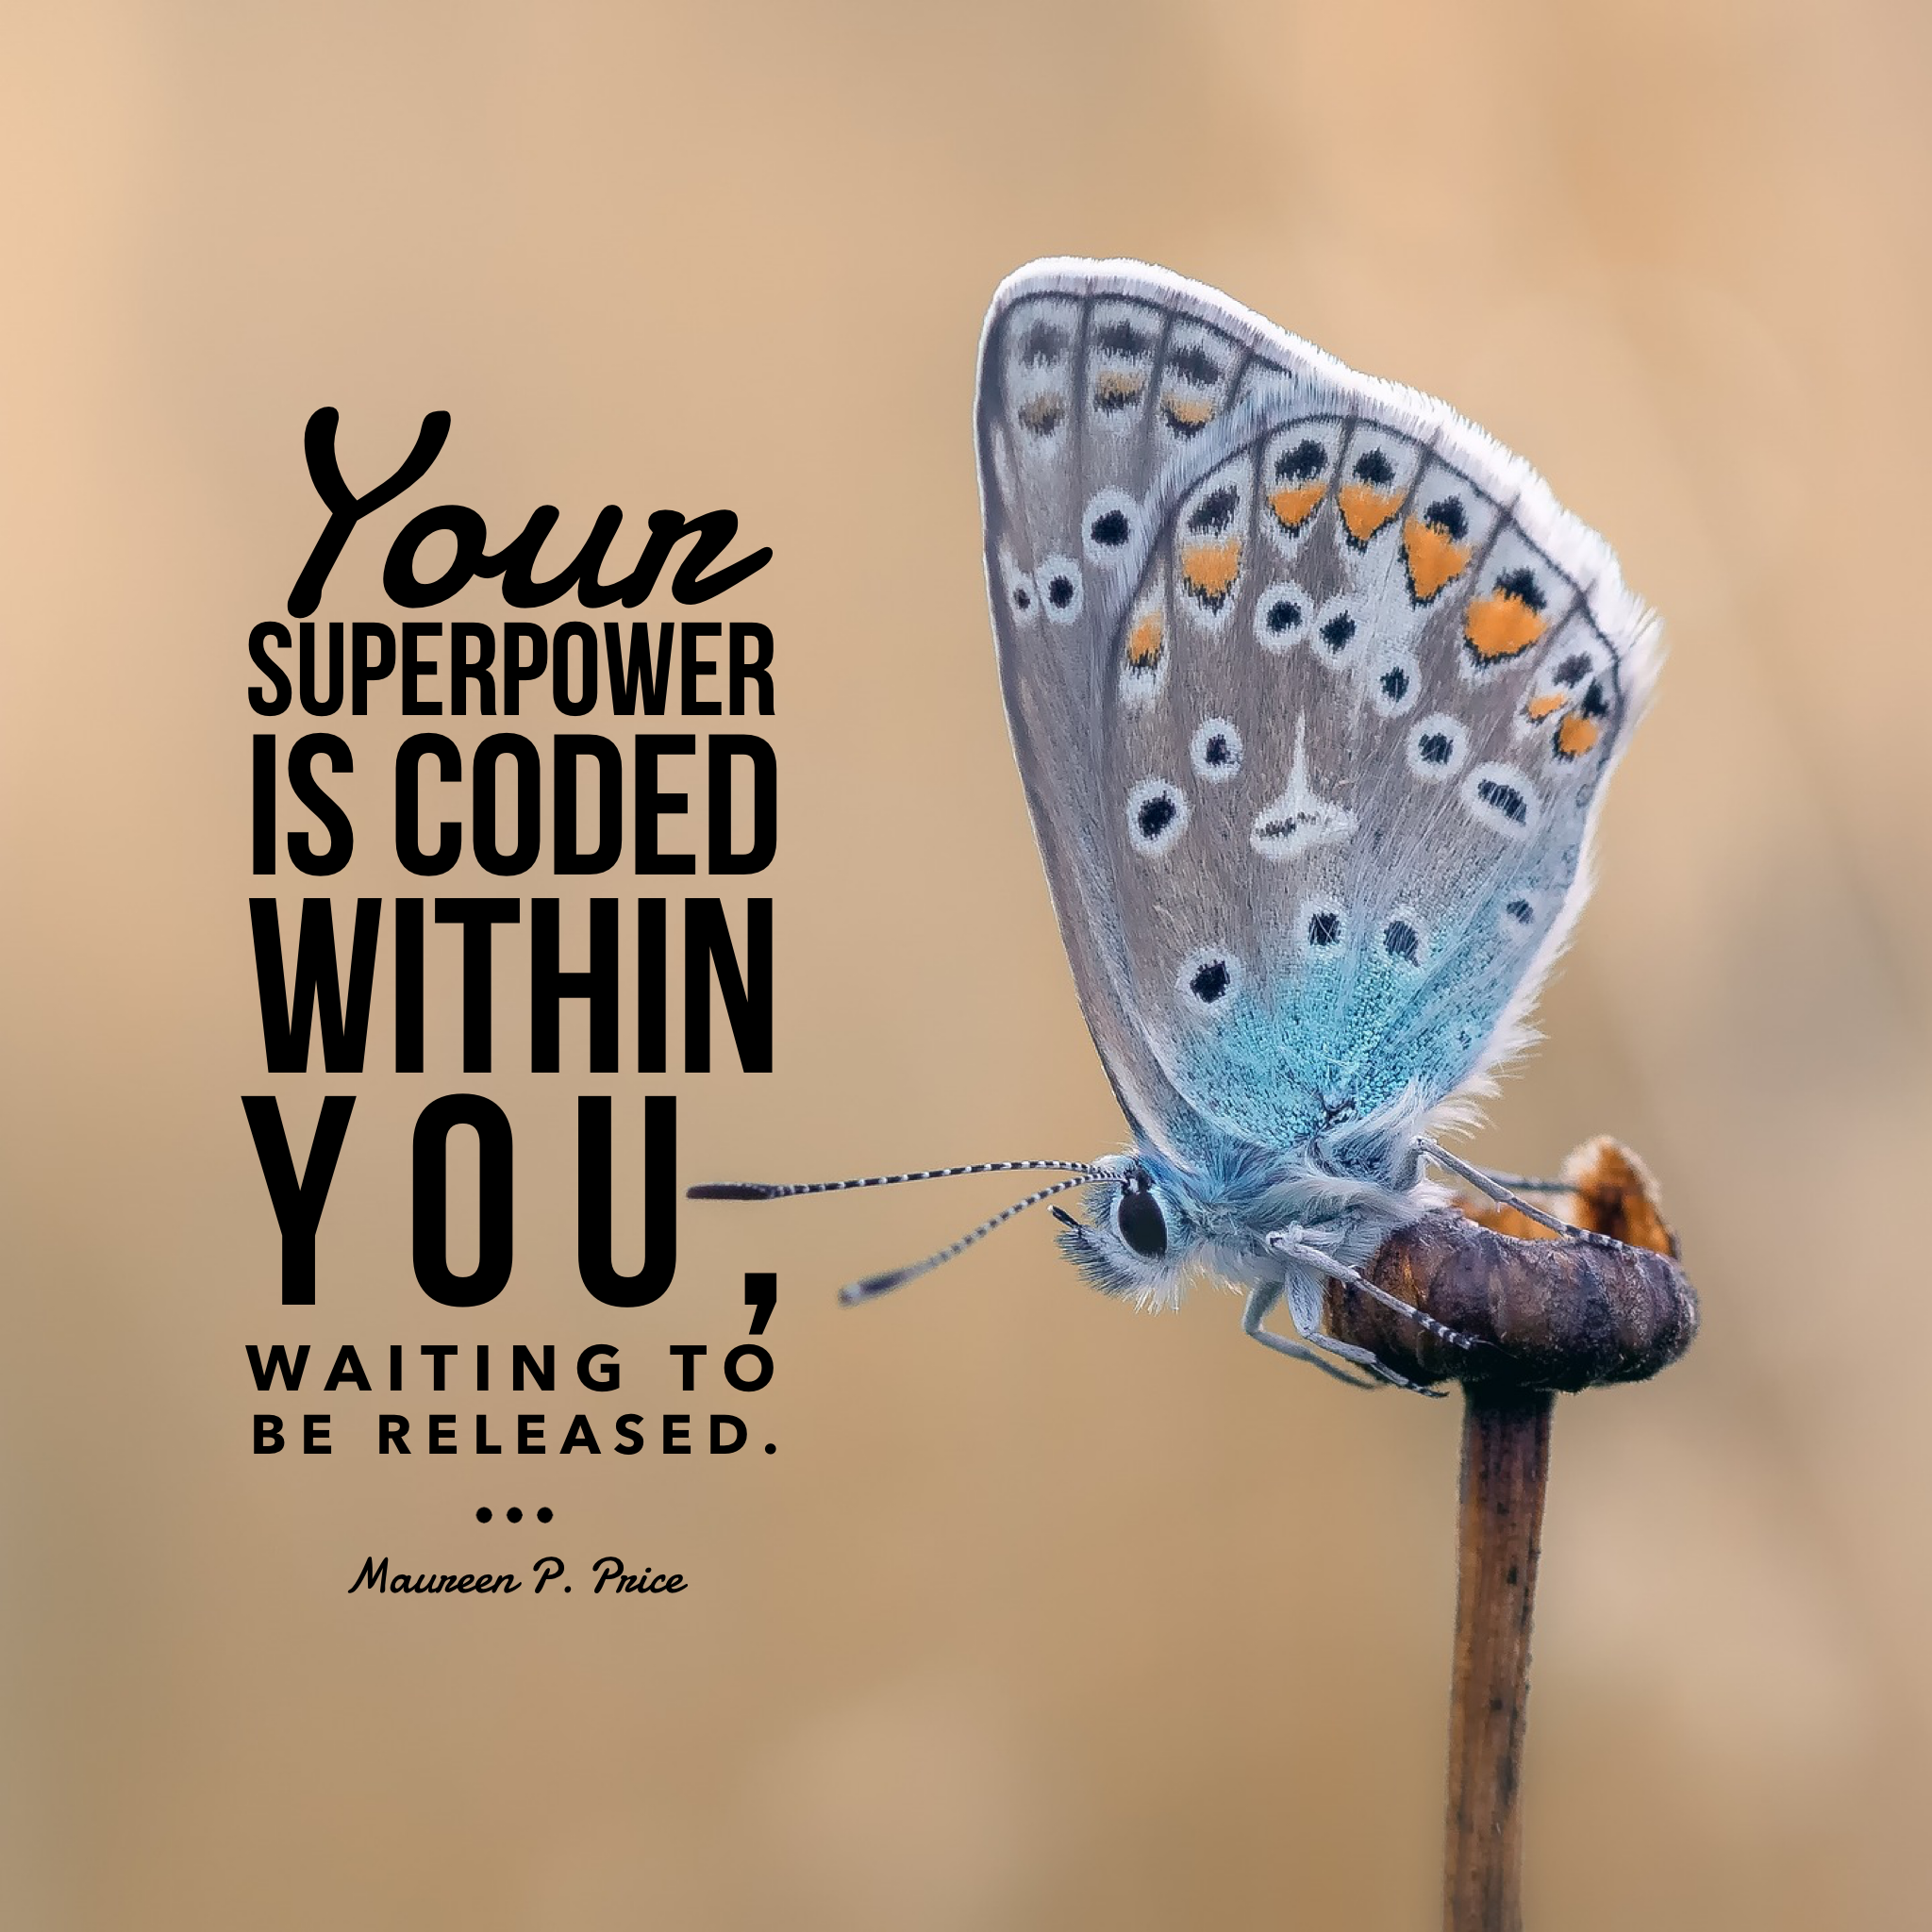 Your superpower is coded within you, waiting to be released.